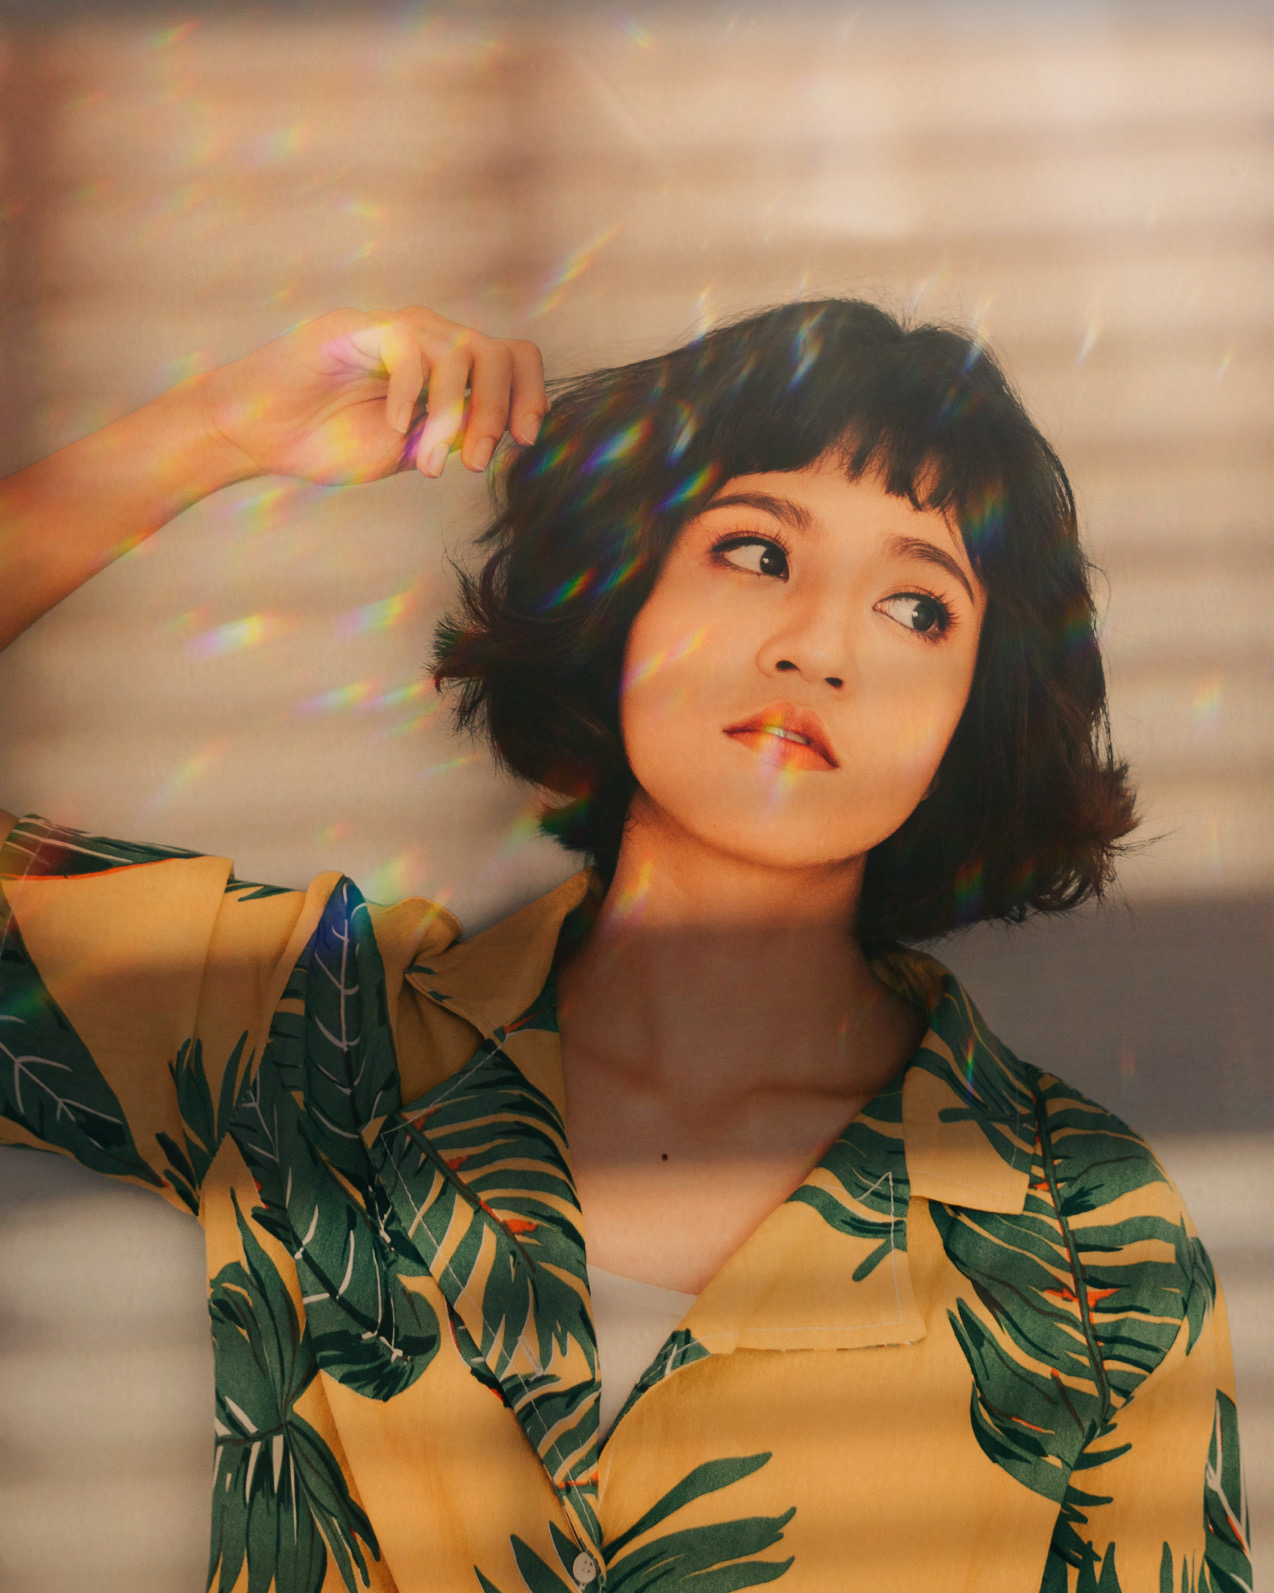 short and black hair girl with yellow shirt photo prism mask effect applied